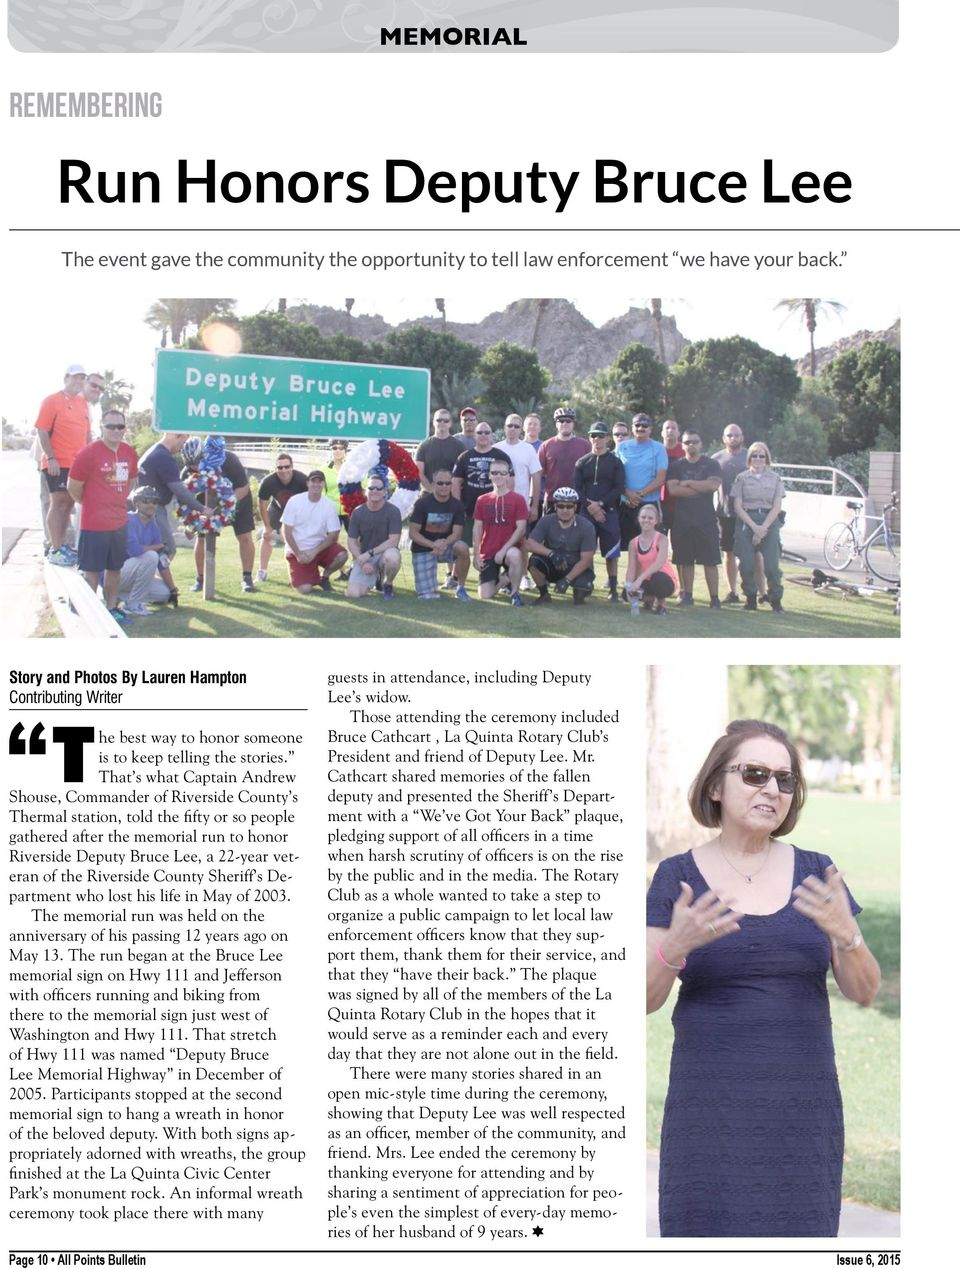 The That s what Captain Andrew Shouse, Commander of Riverside County s Thermal station, told the fifty or so people gathered after the memorial run to honor Riverside Deputy Bruce Lee, a 22-year